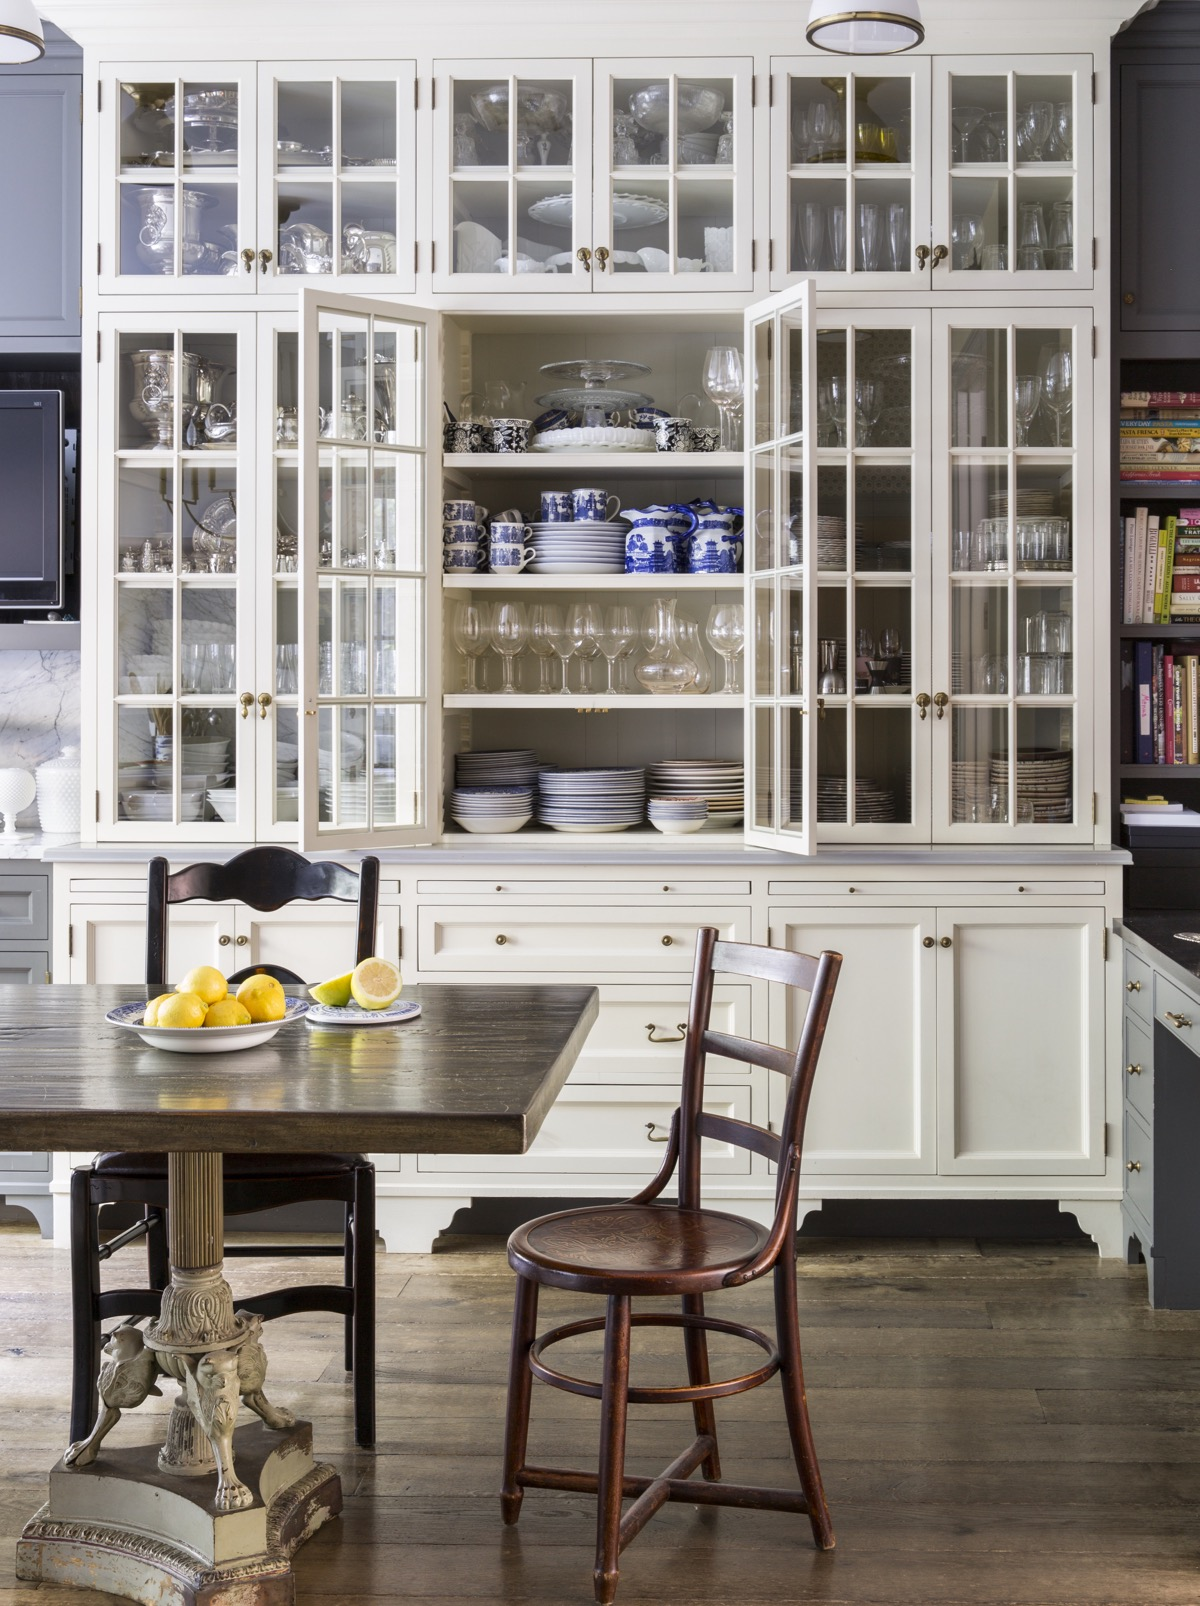 Kitchen with floor to ceiling white wood cabinets with various glasses, dishes, etc.